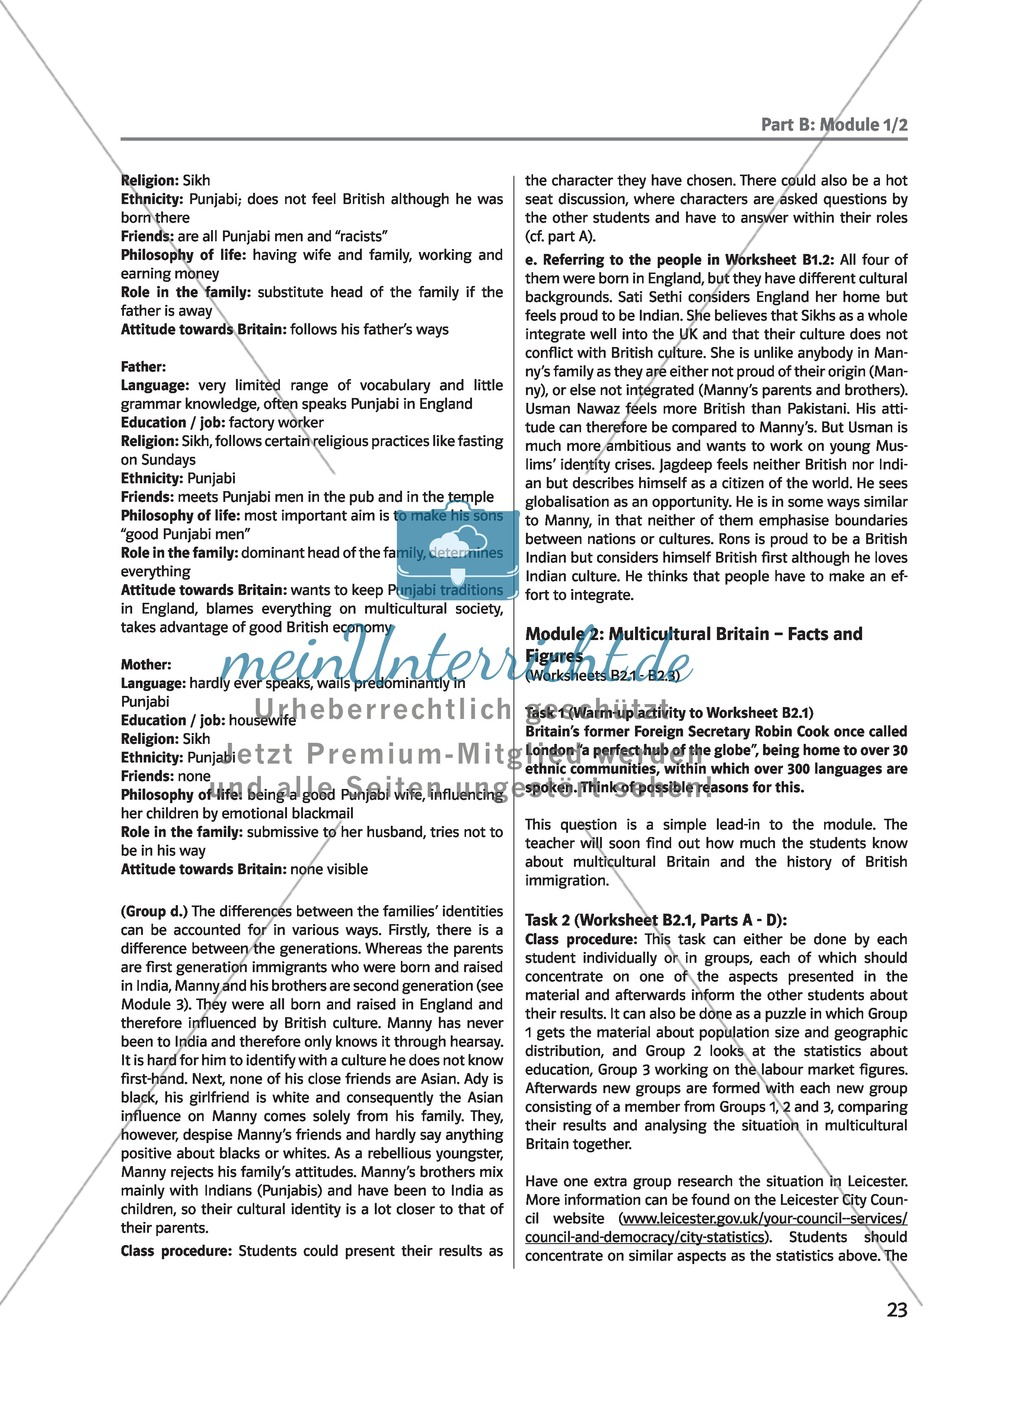 (Un)arranged marriage - Themen für die Oberstufe: Personal and cultural identity in general and in reference to the novel Preview 2